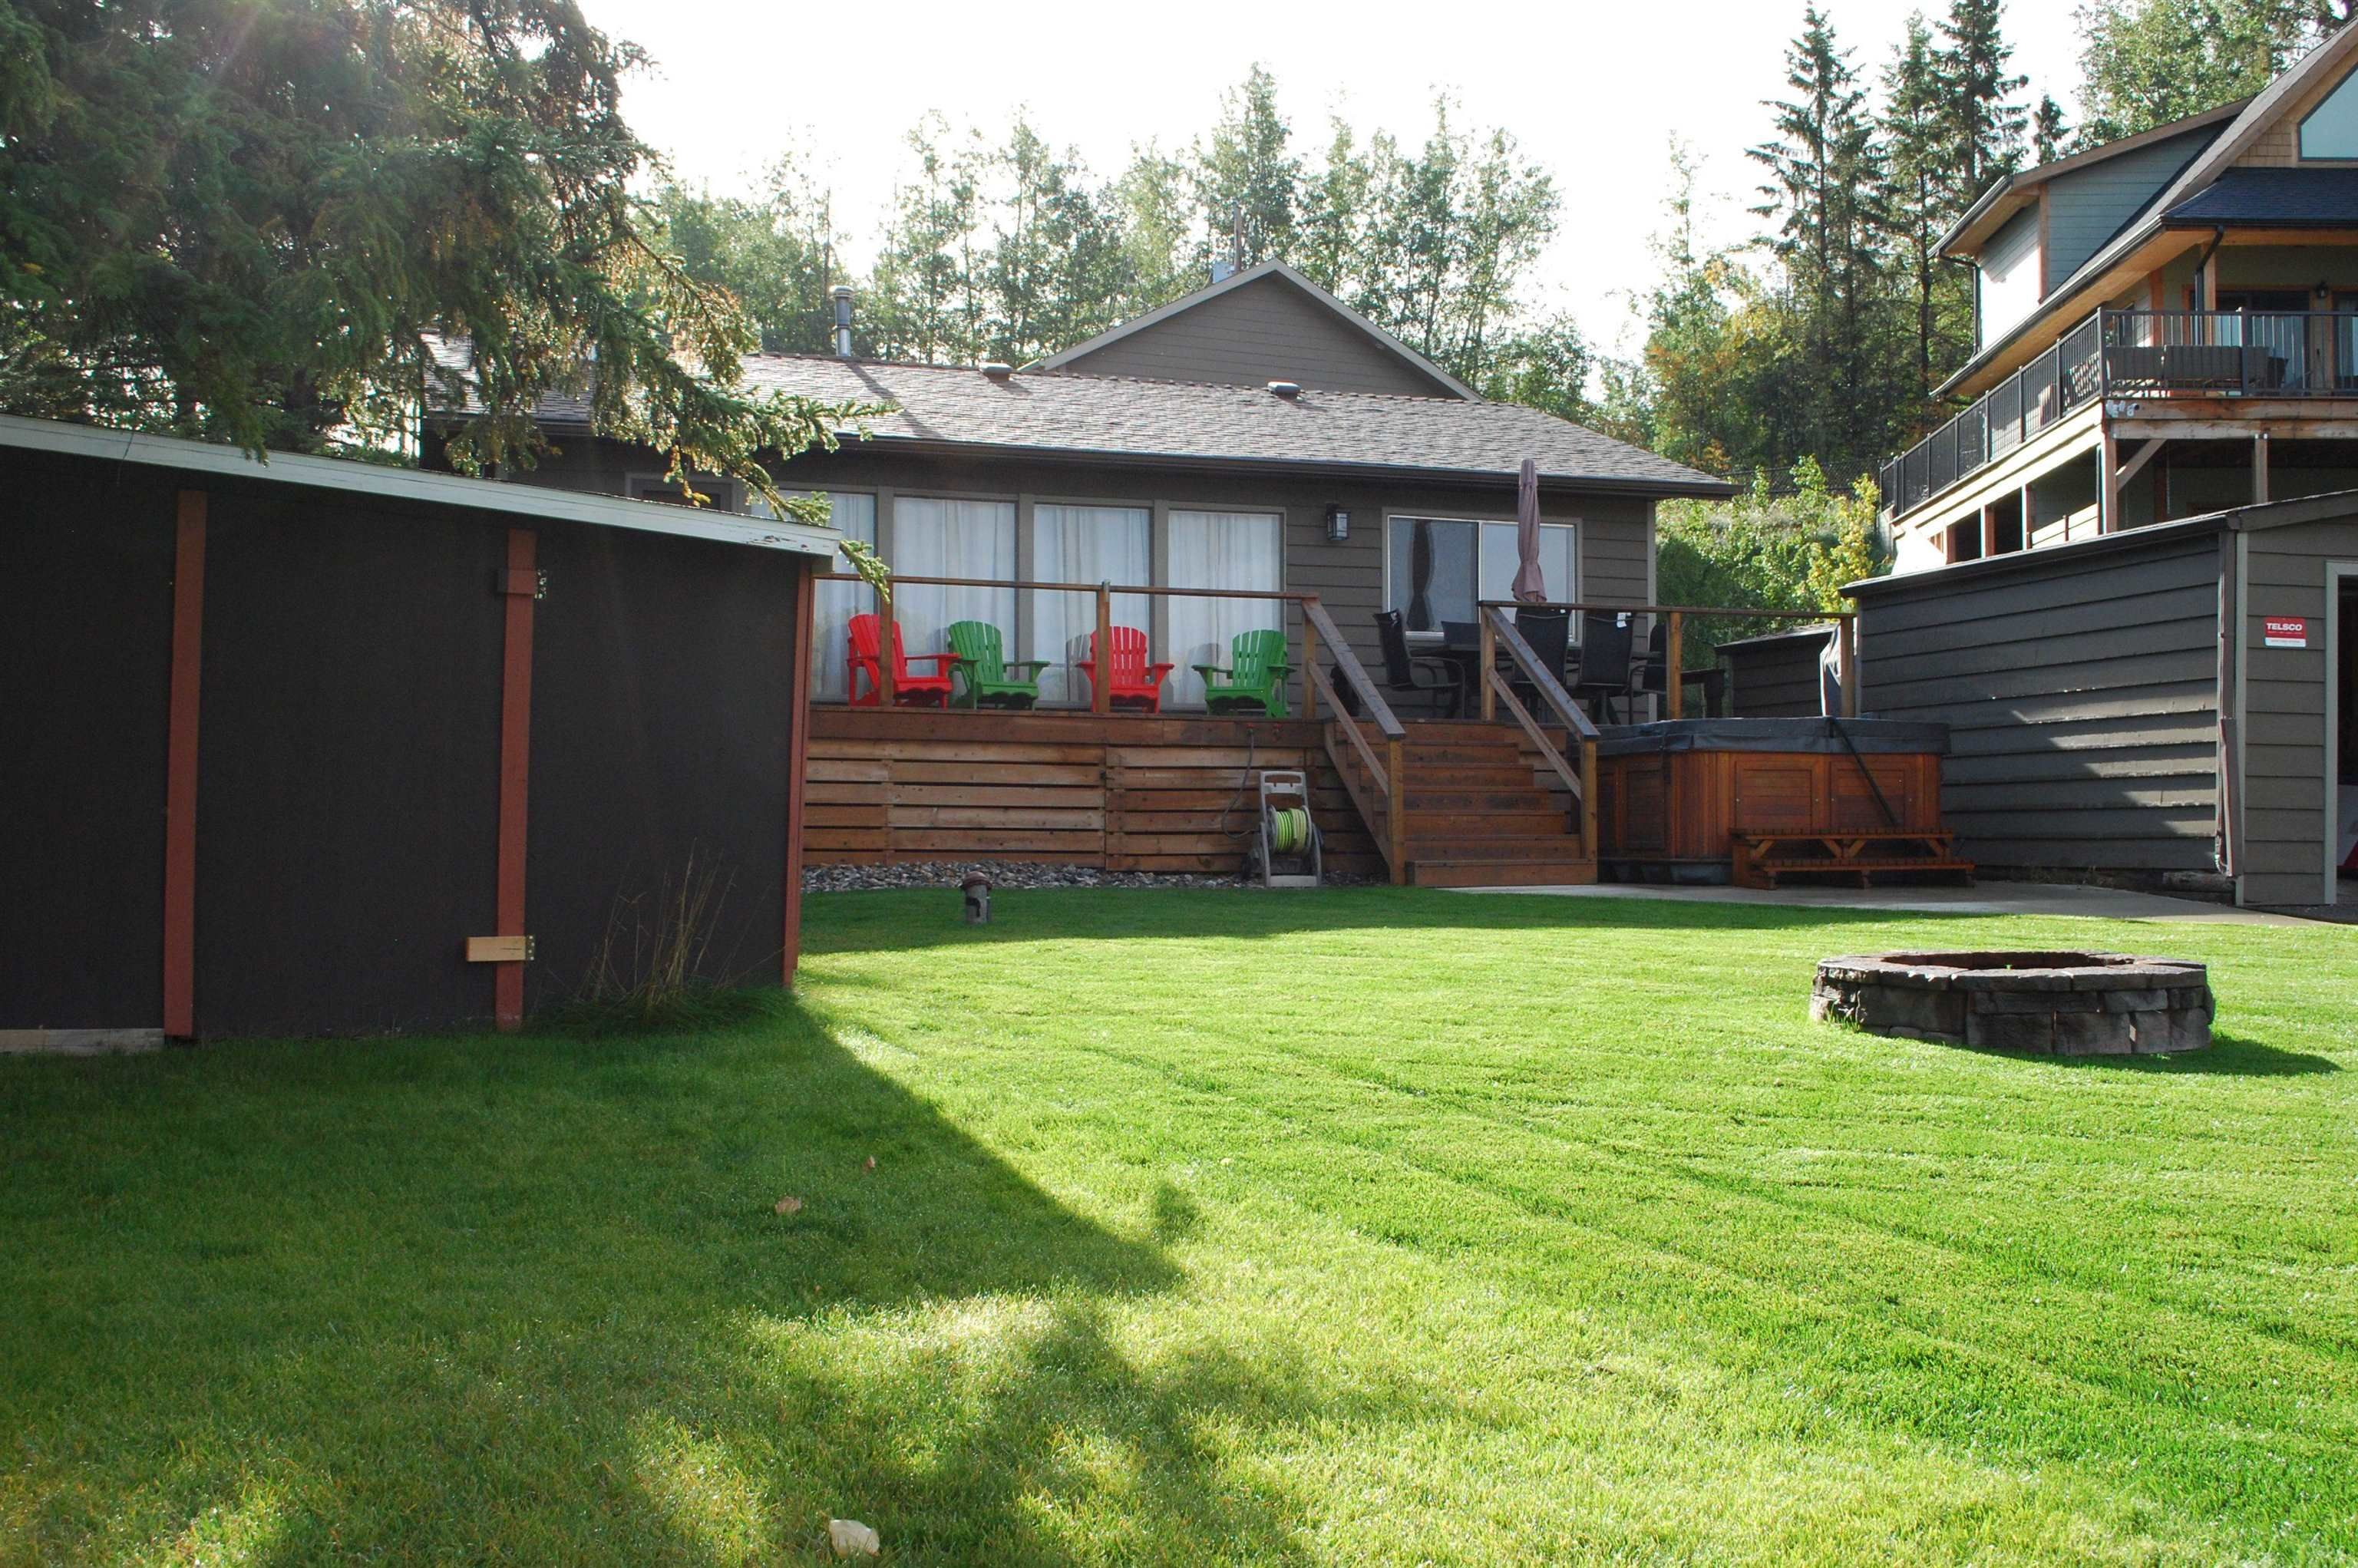 Main Photo: 25 2332 TWP RD 521: Rural Parkland County House for sale : MLS®# E4262494